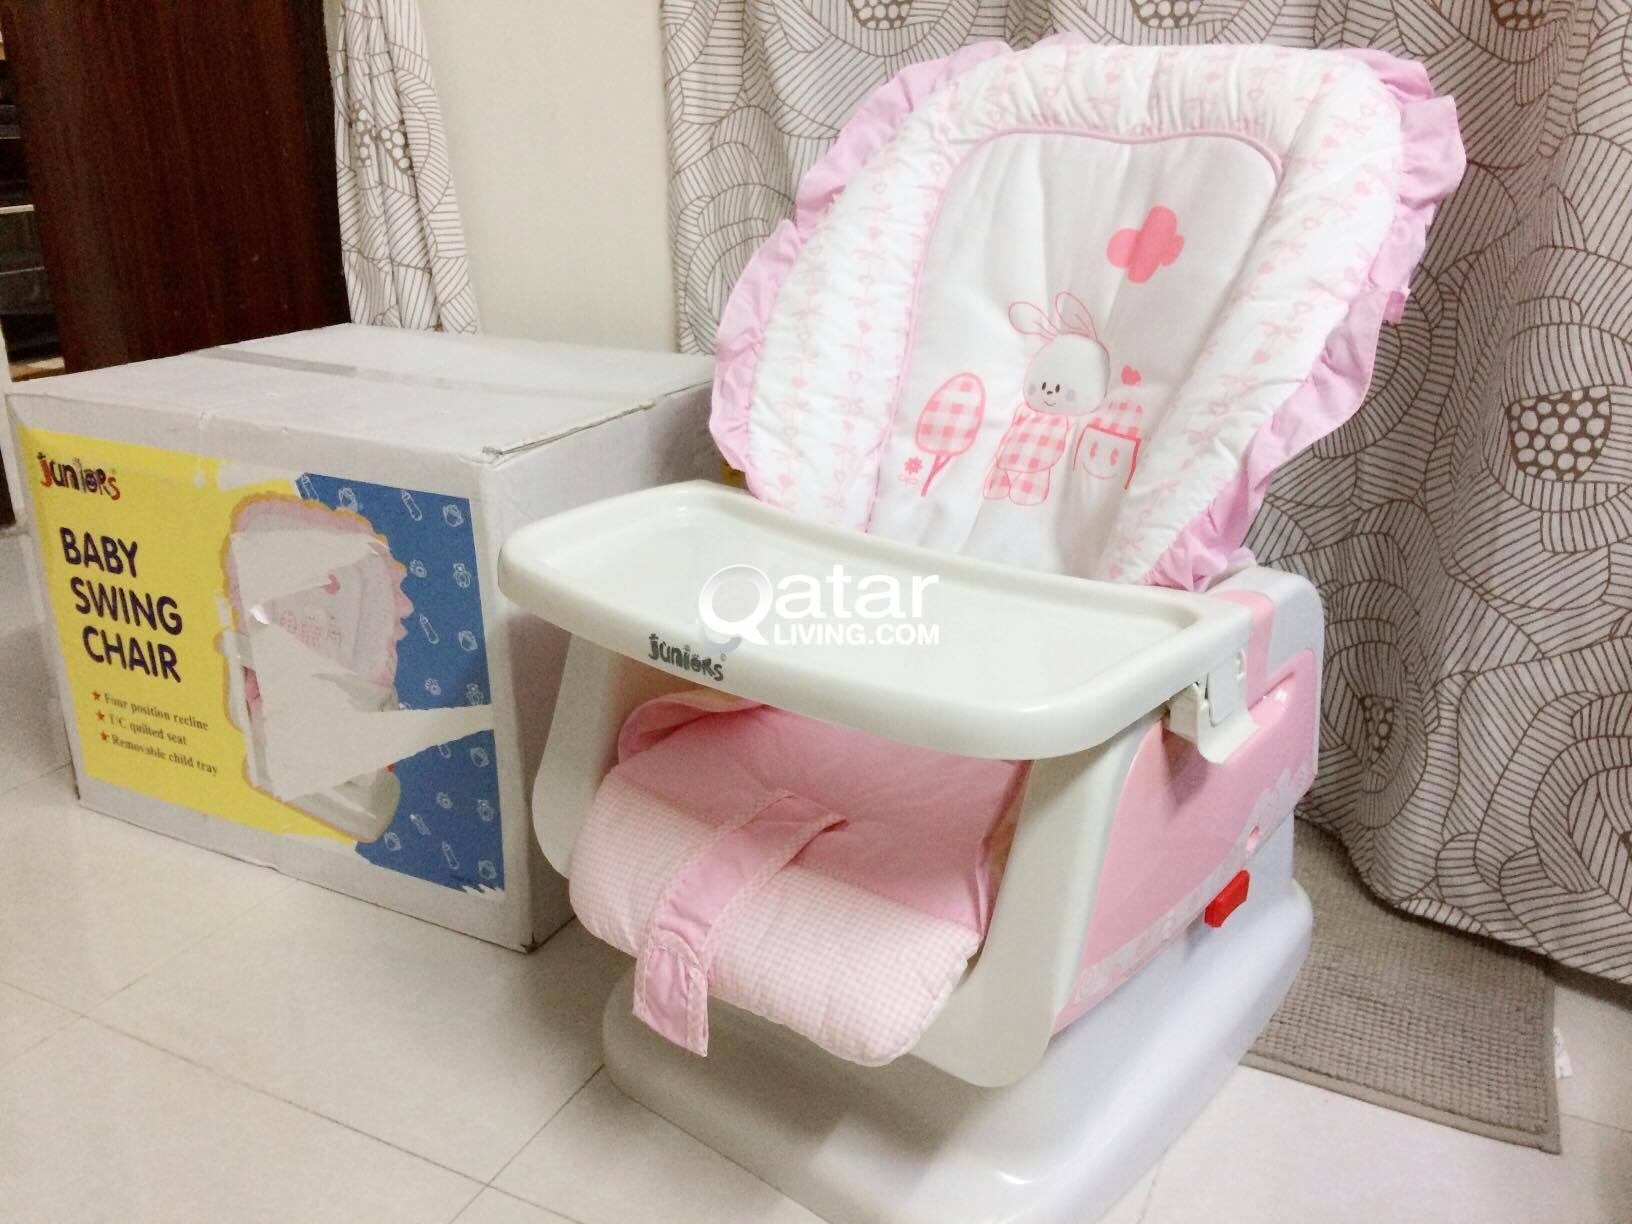 JUNIORS Apricot Baby Swing Bed (Brand new with box